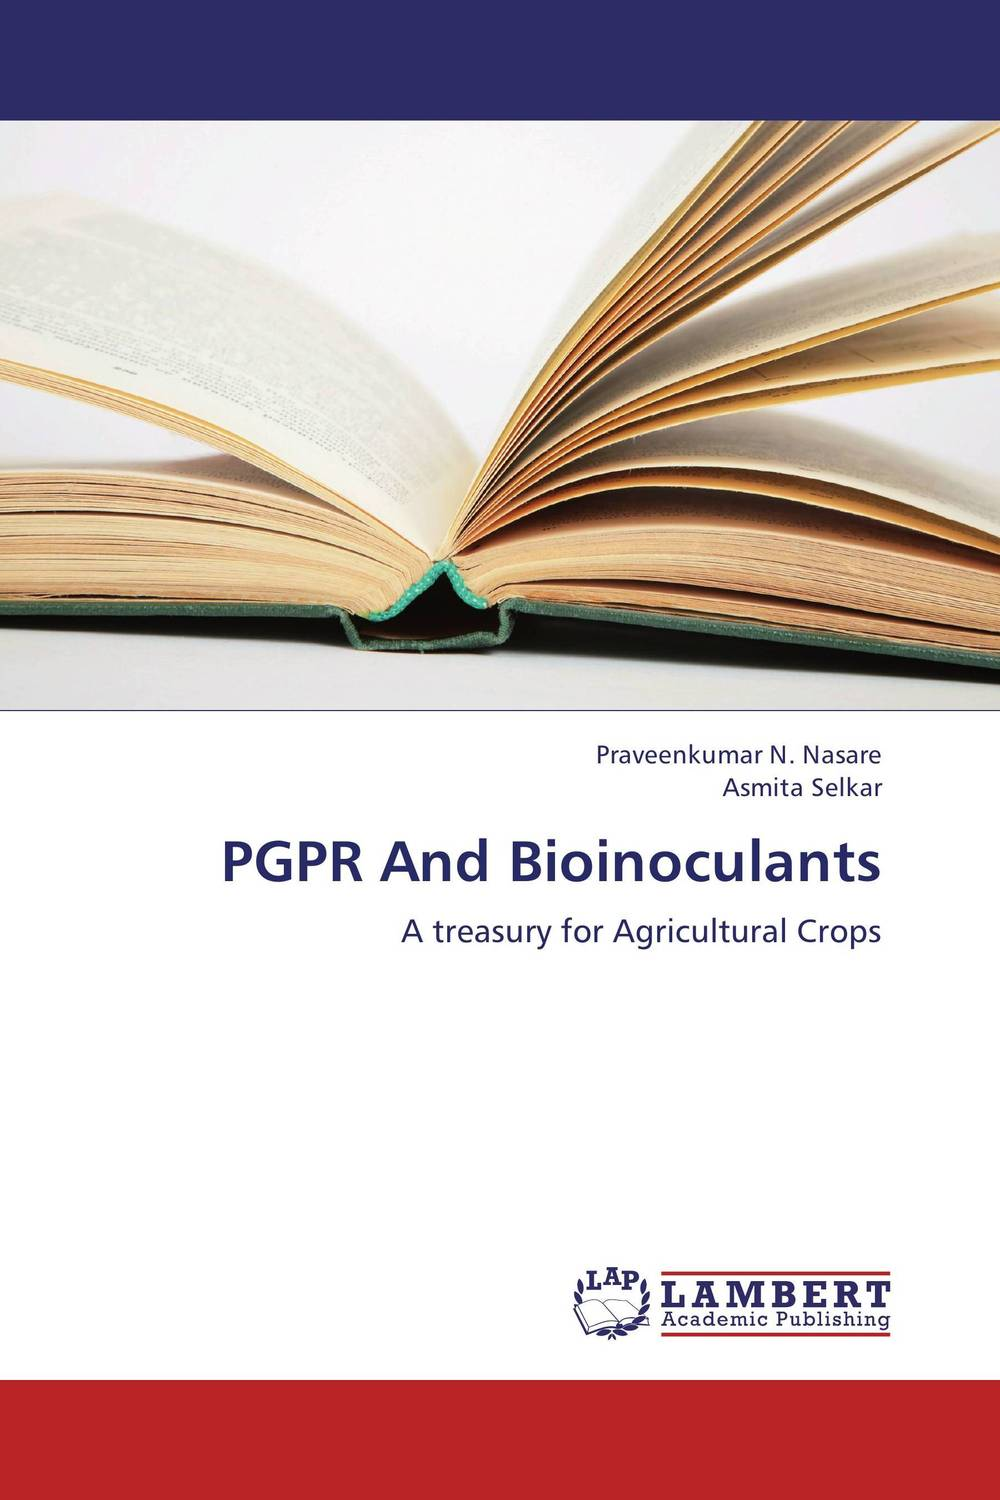 PGPR And Bioinoculants ravindra kumar jain nod factors and nodulation process by rhizobia in cicer arietinum